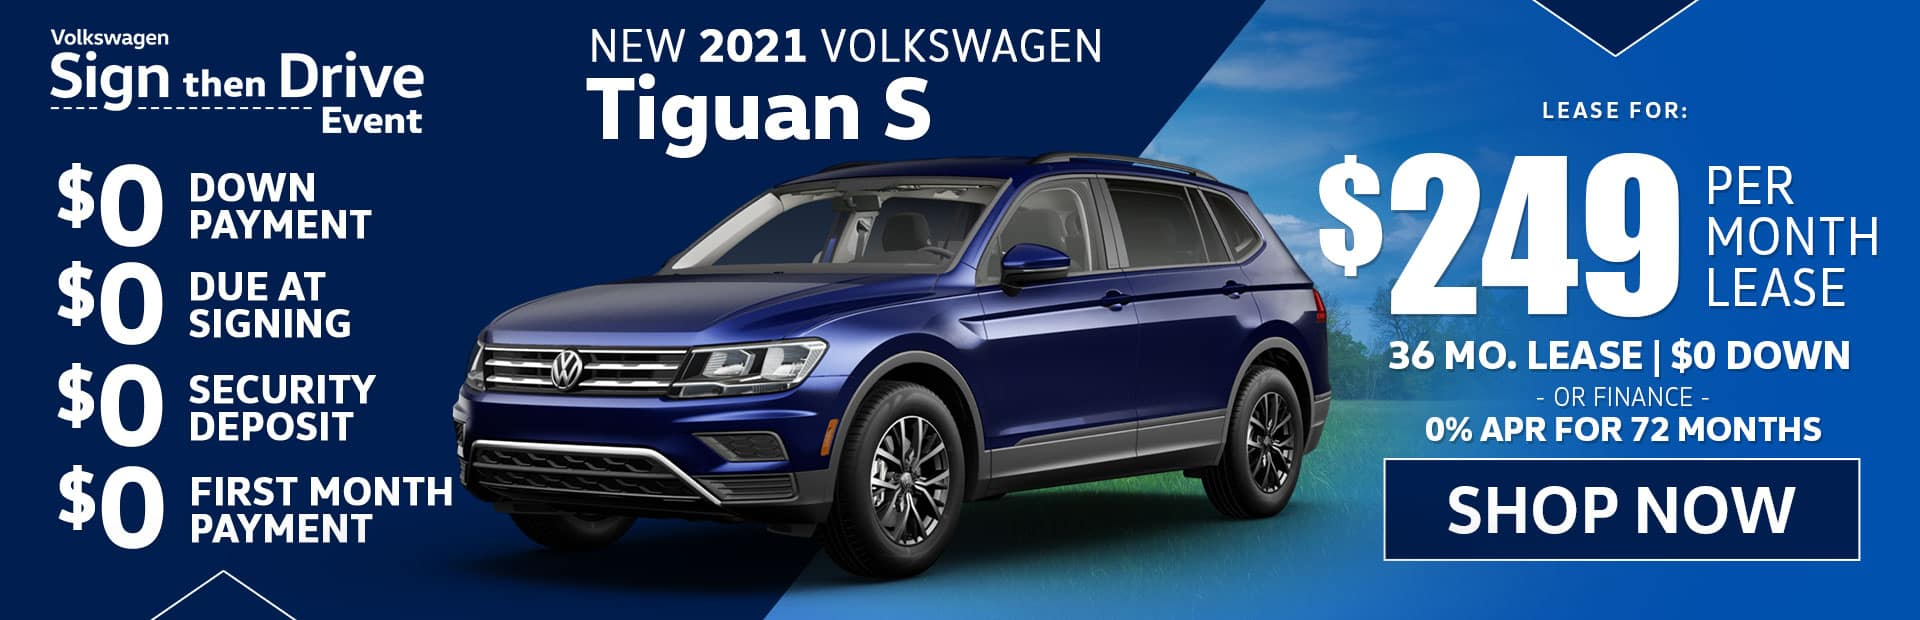 new vw tiguan s lease special in glendale california and los angeles california